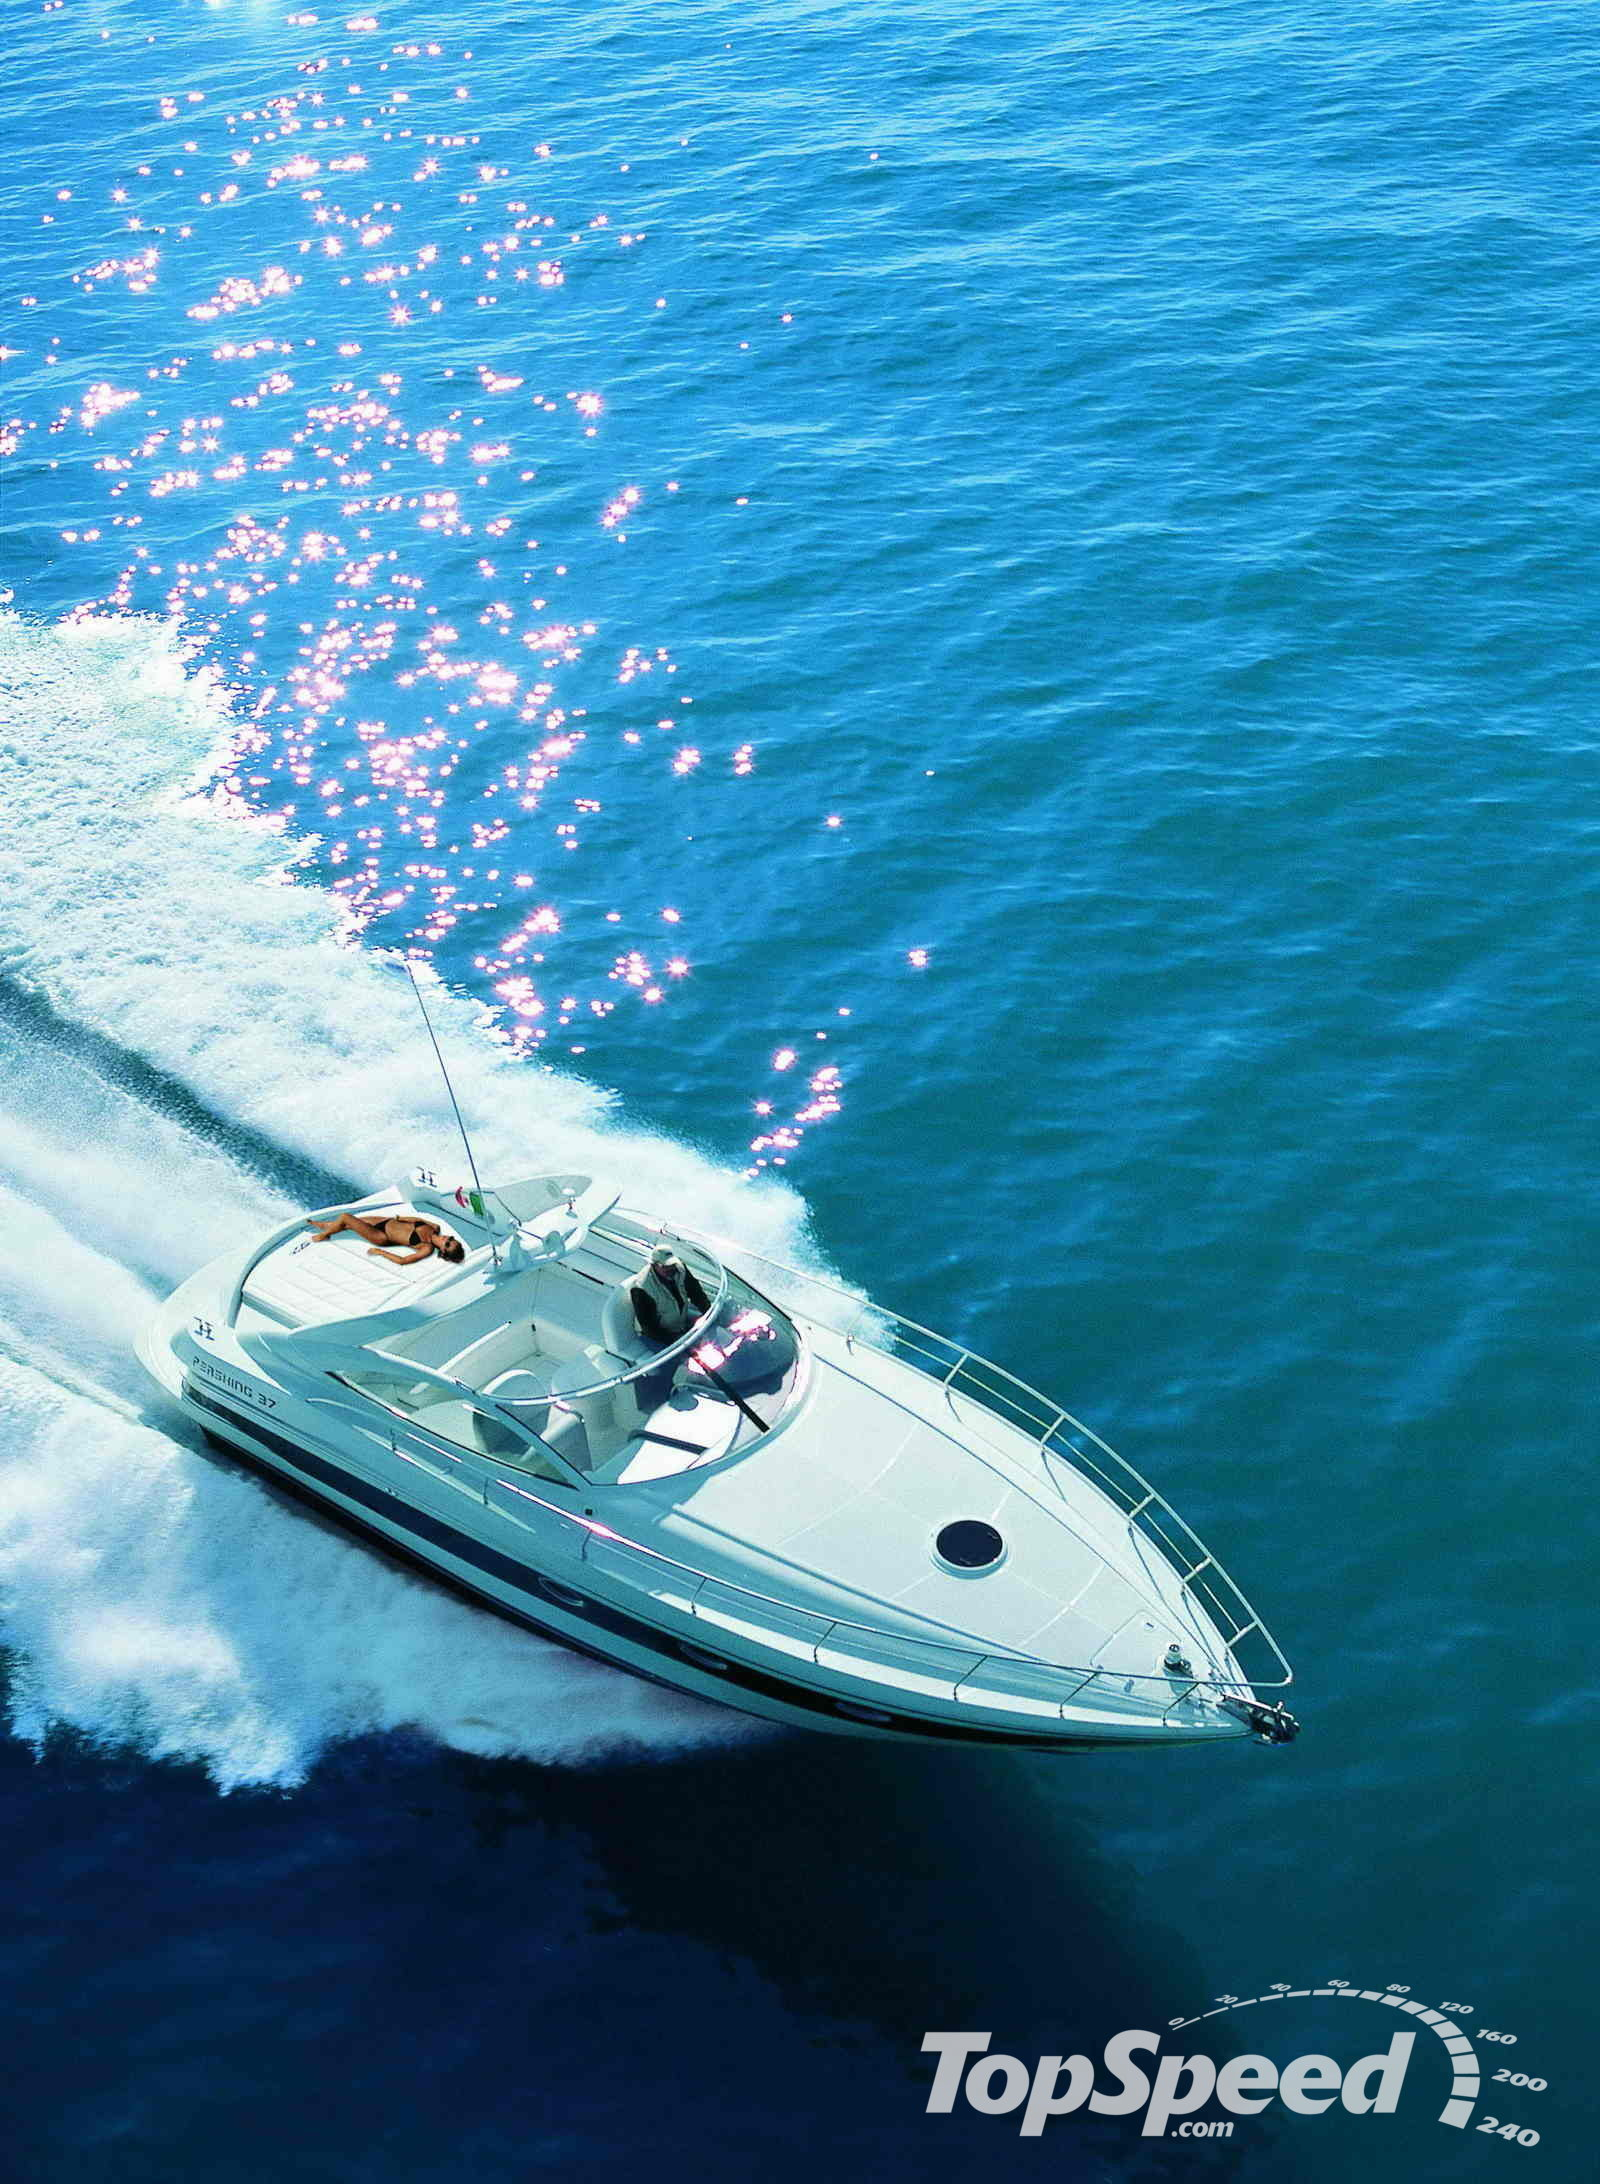 37 Best Images About Chifferobe Project On Pinterest: 2007 Pershing 37 Review